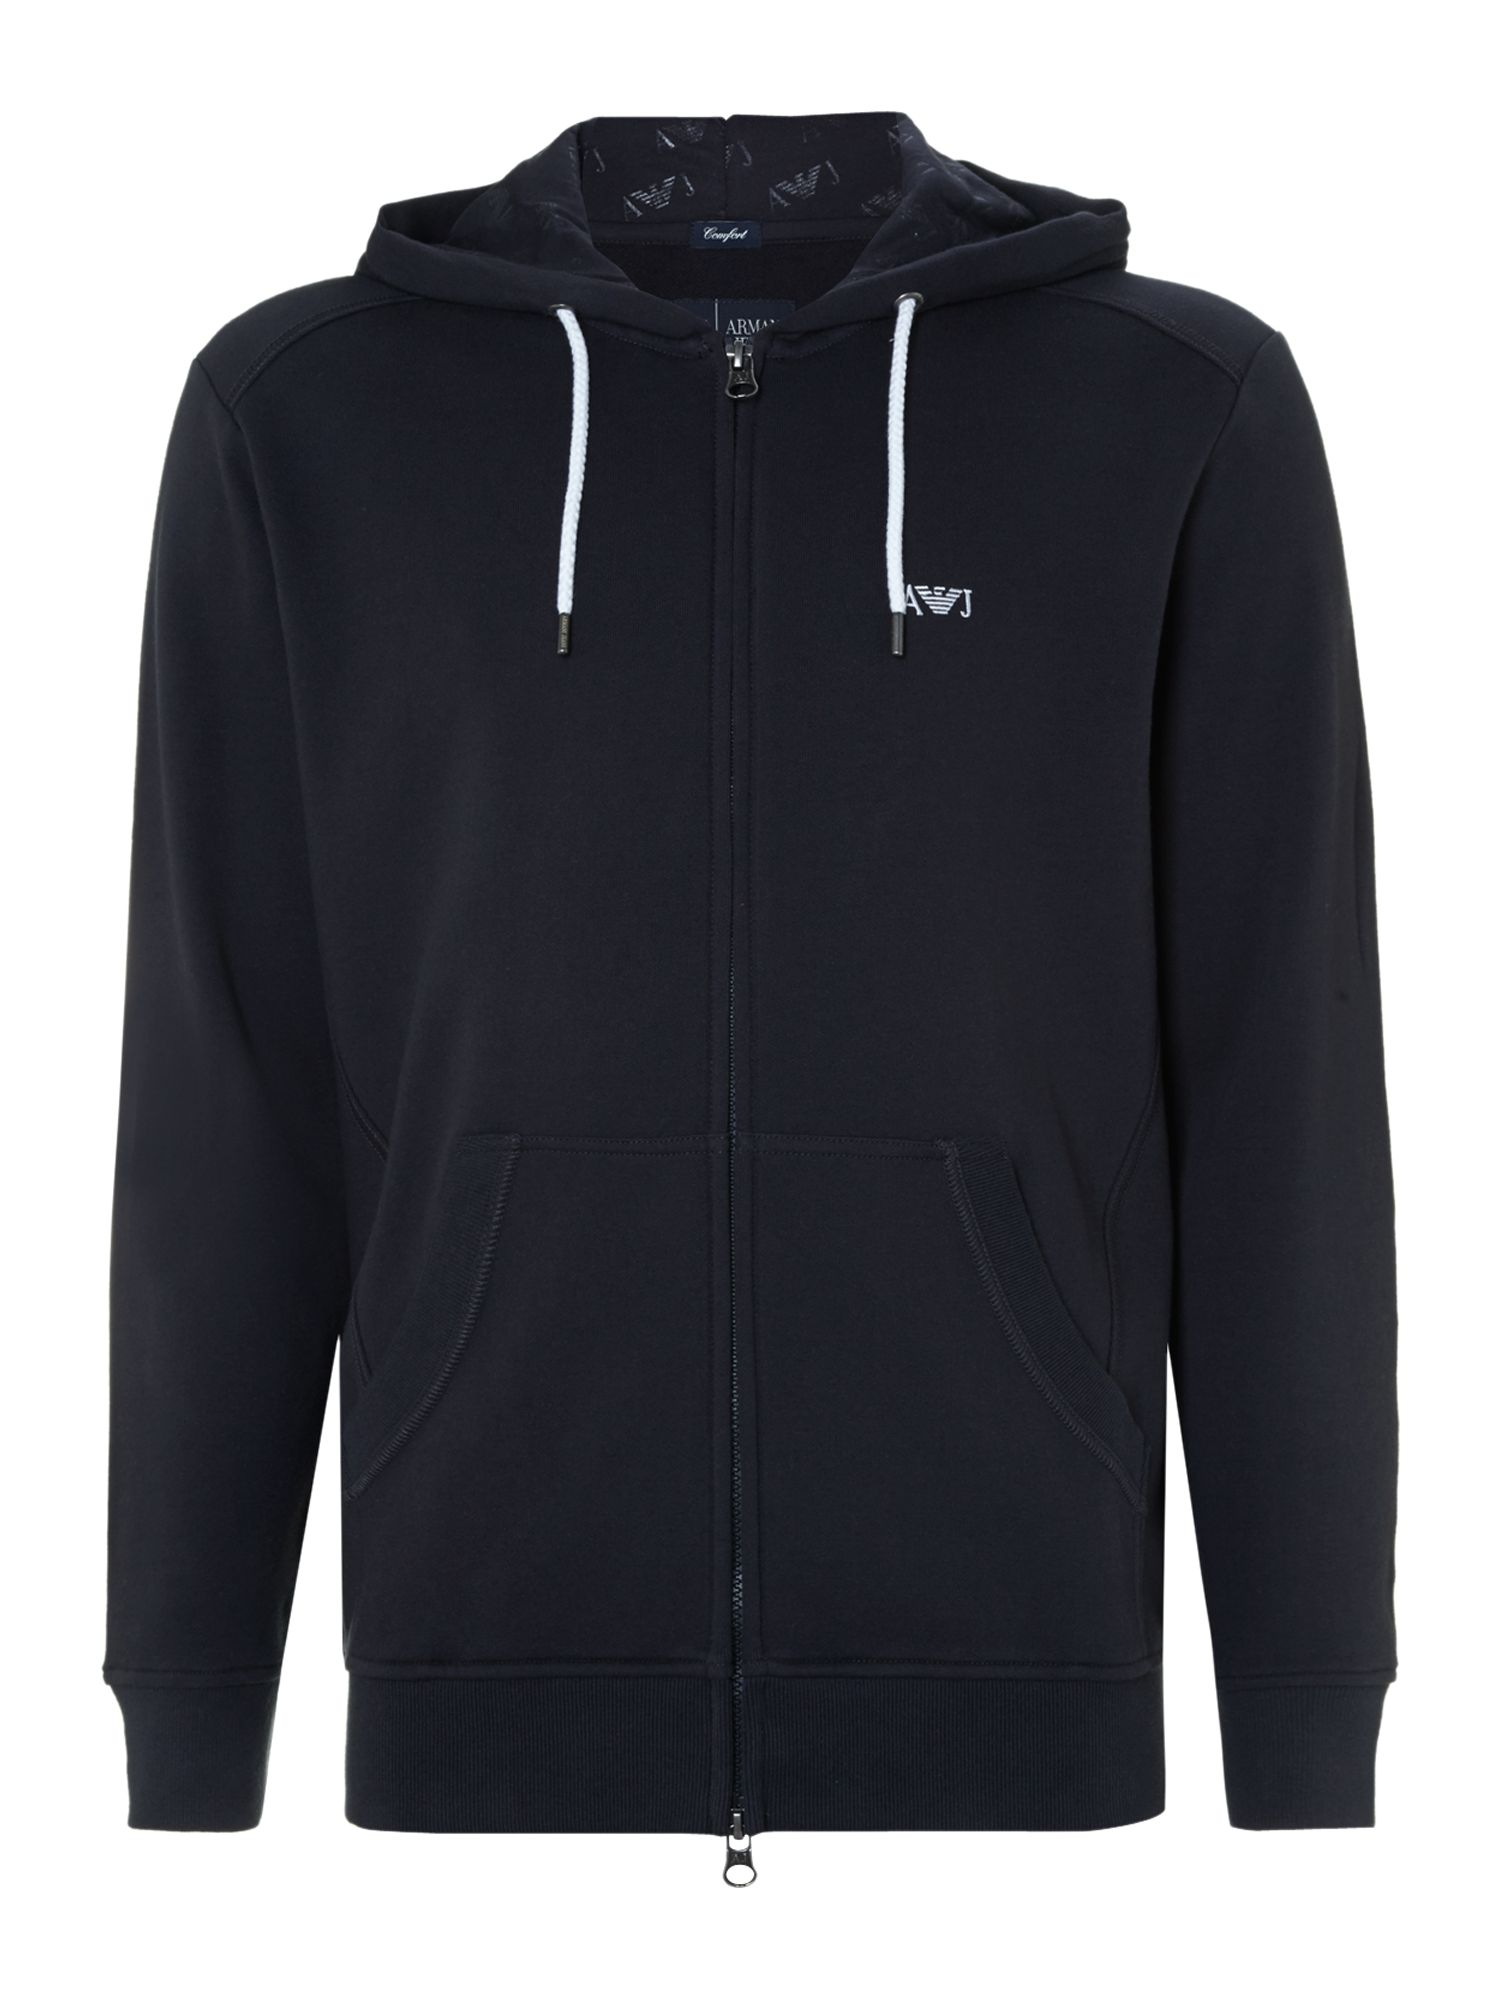 Large logo zip up hooded jumper